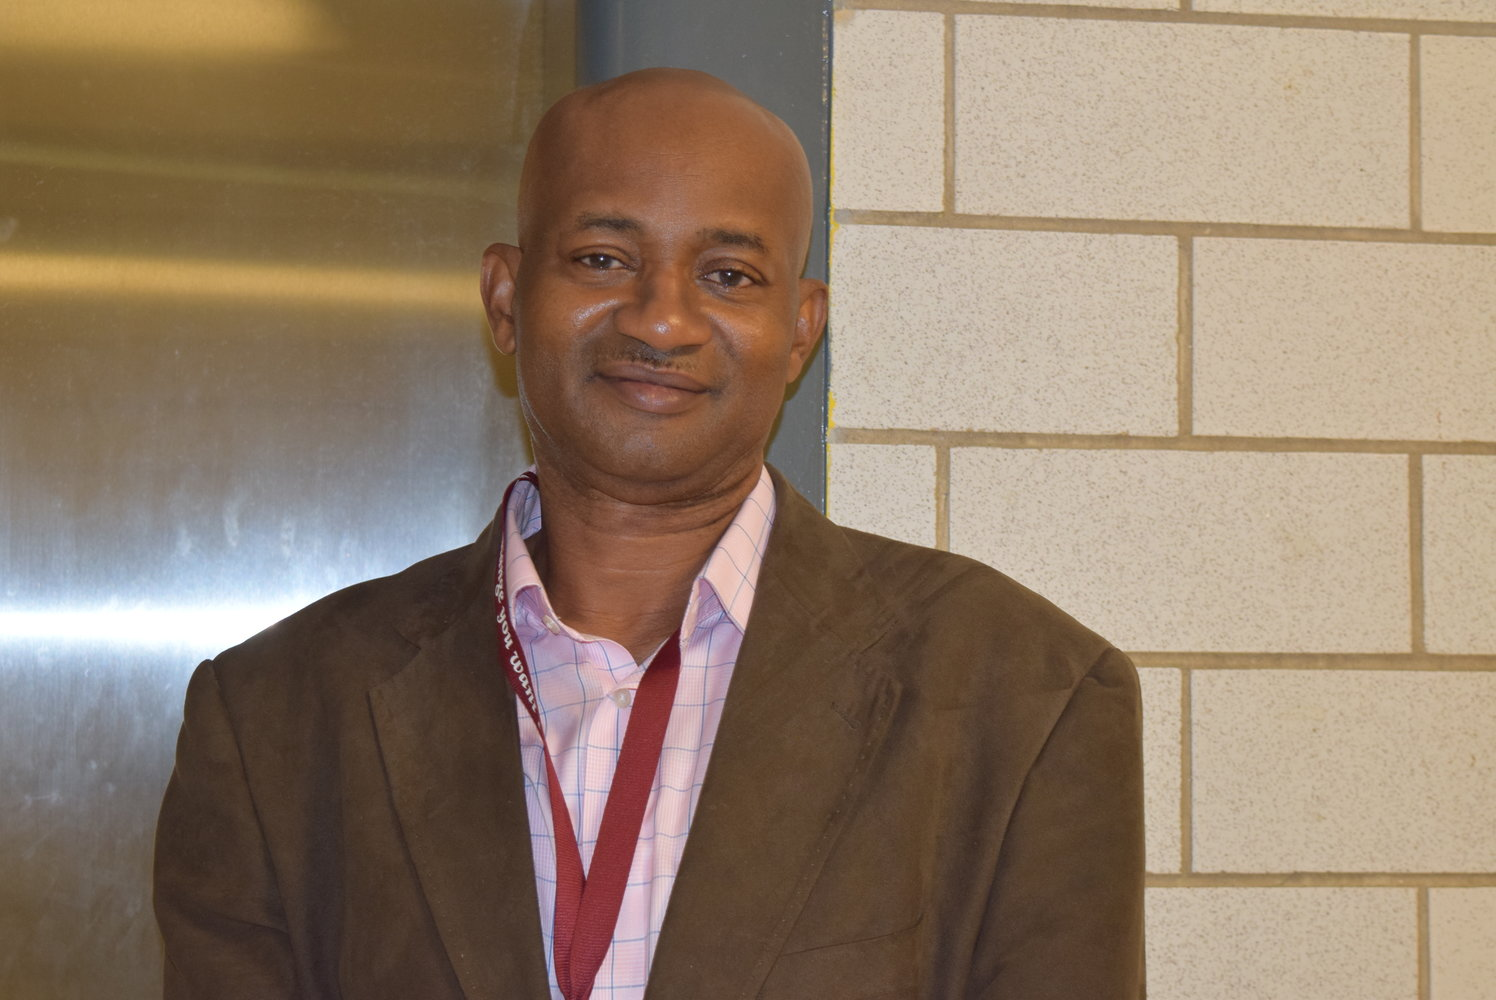 Mr. Ukandu joins the ranks of the HHS faculty. (Photo Credit: Liza Keane)